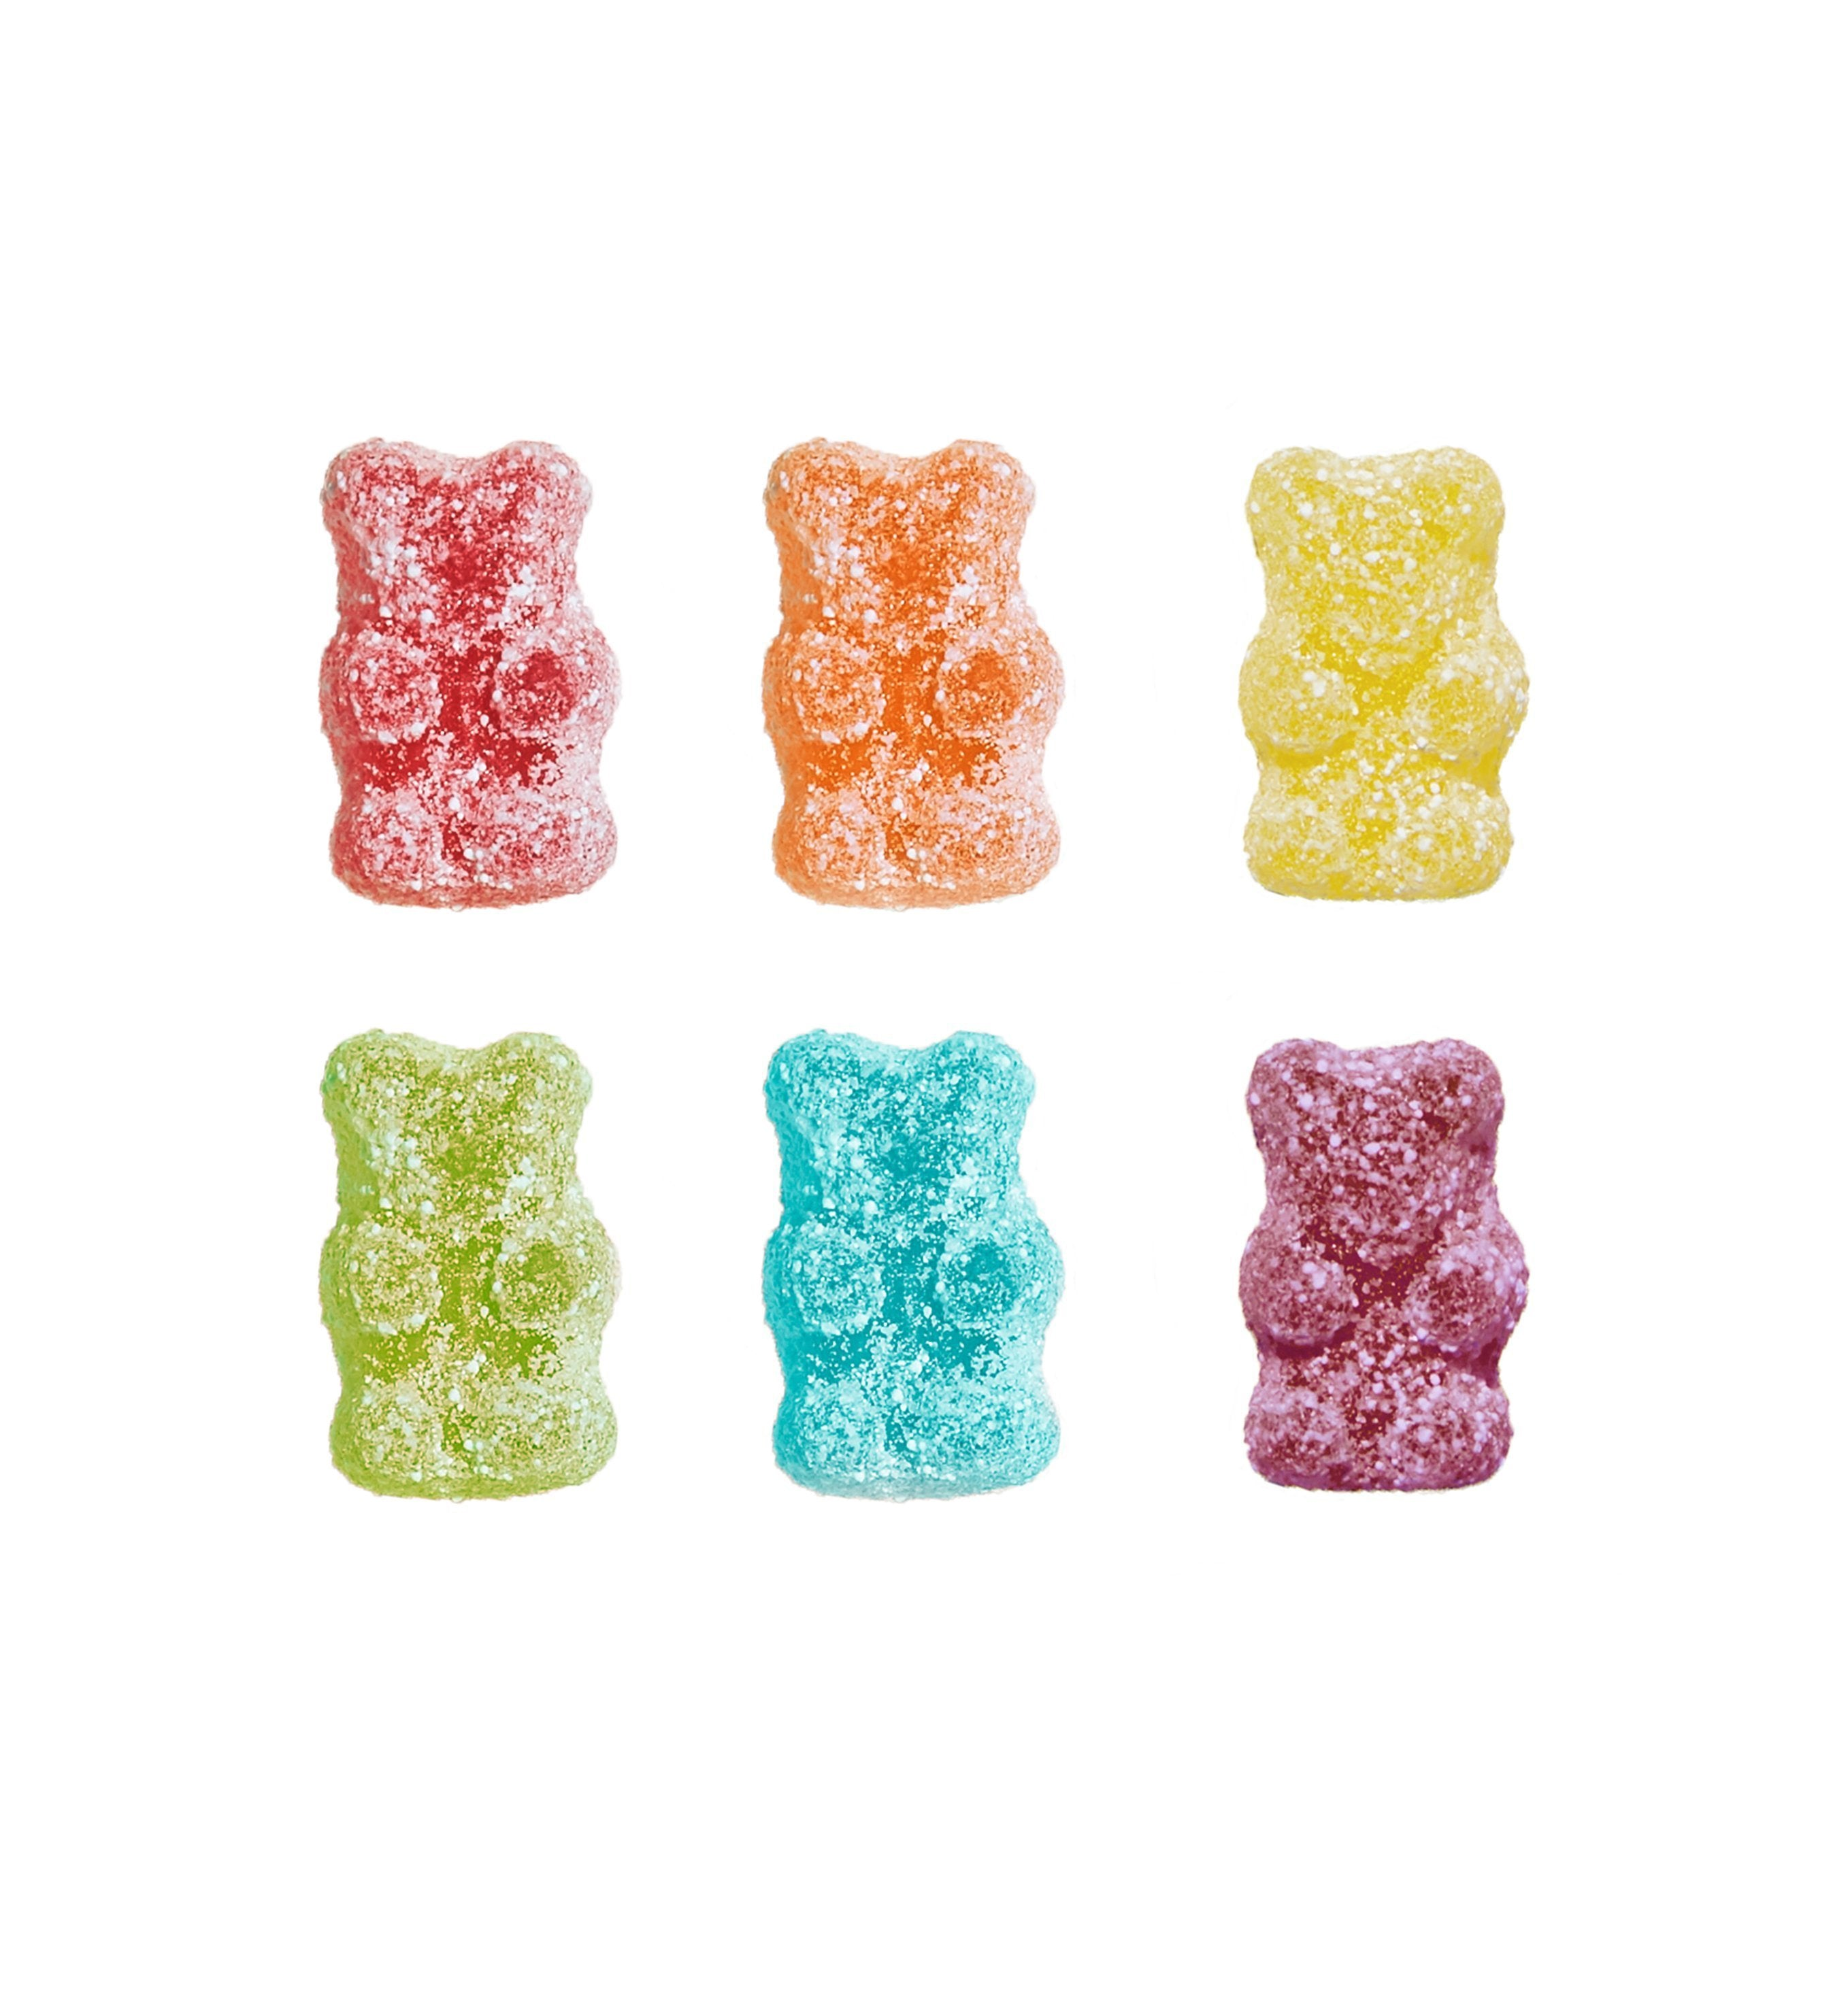 VEGAN SOUR Rainbow Bears